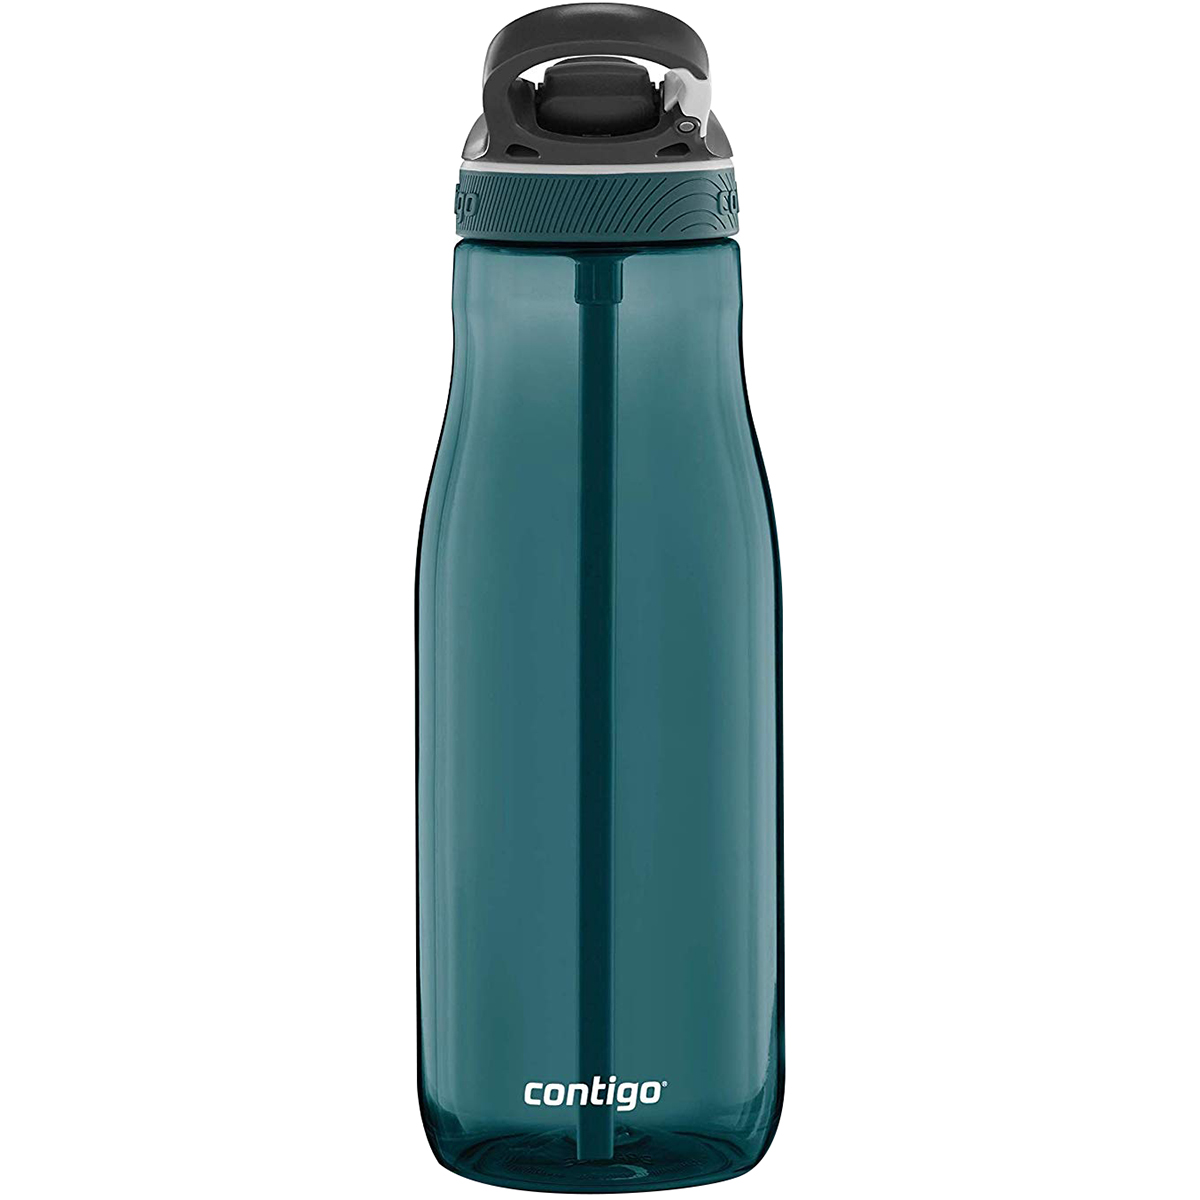 Contigo-40-oz-Ashland-Autospout-Water-Bottle thumbnail 5